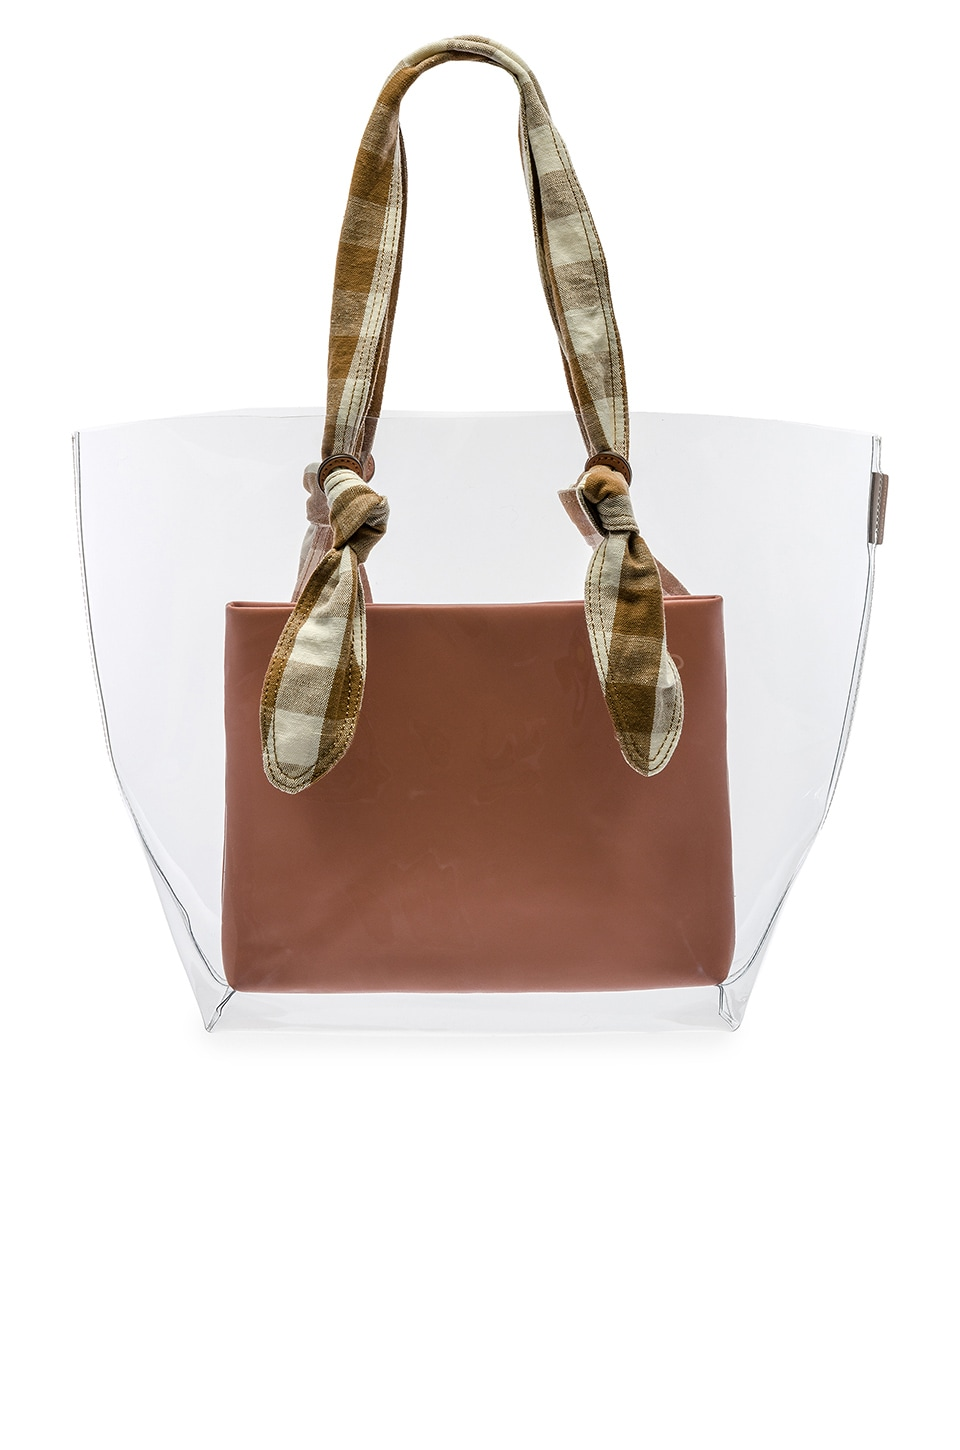 Loeffler Randall Lydia Tote in Clear, Brown & Apricot